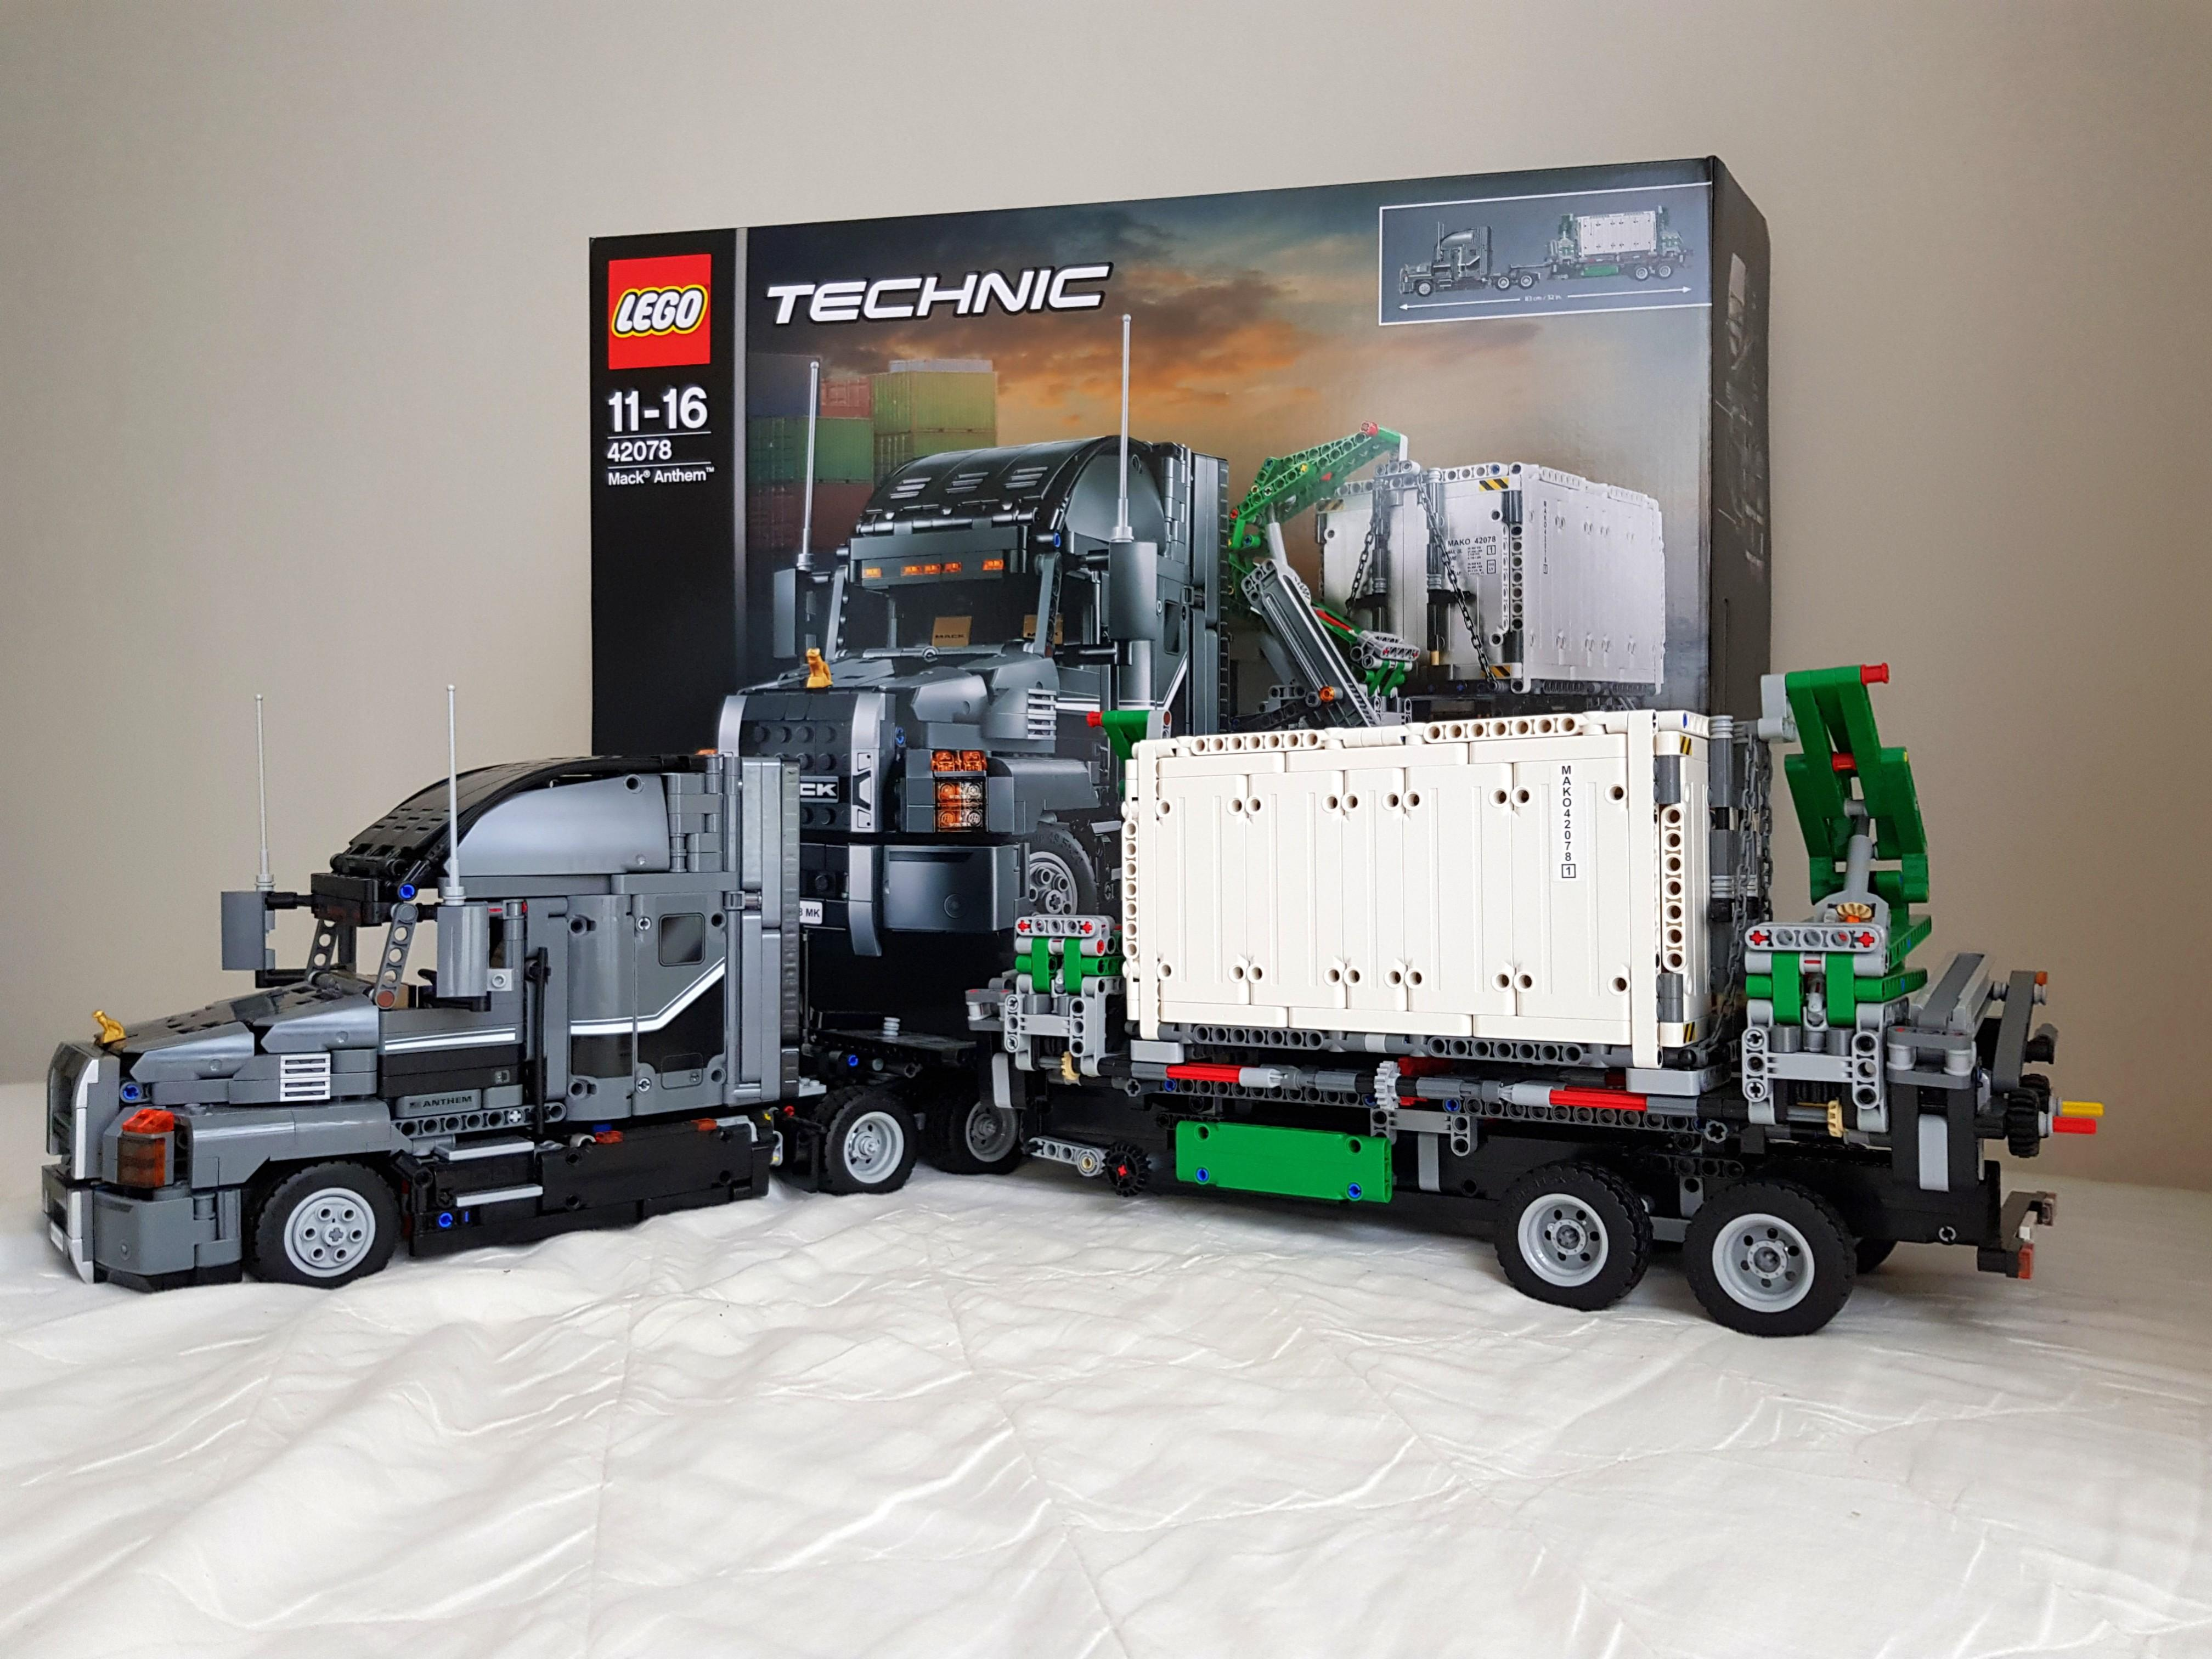 Great Condition Lego Technic Mack Truck Toys Games Bricks Figurines On Carousell